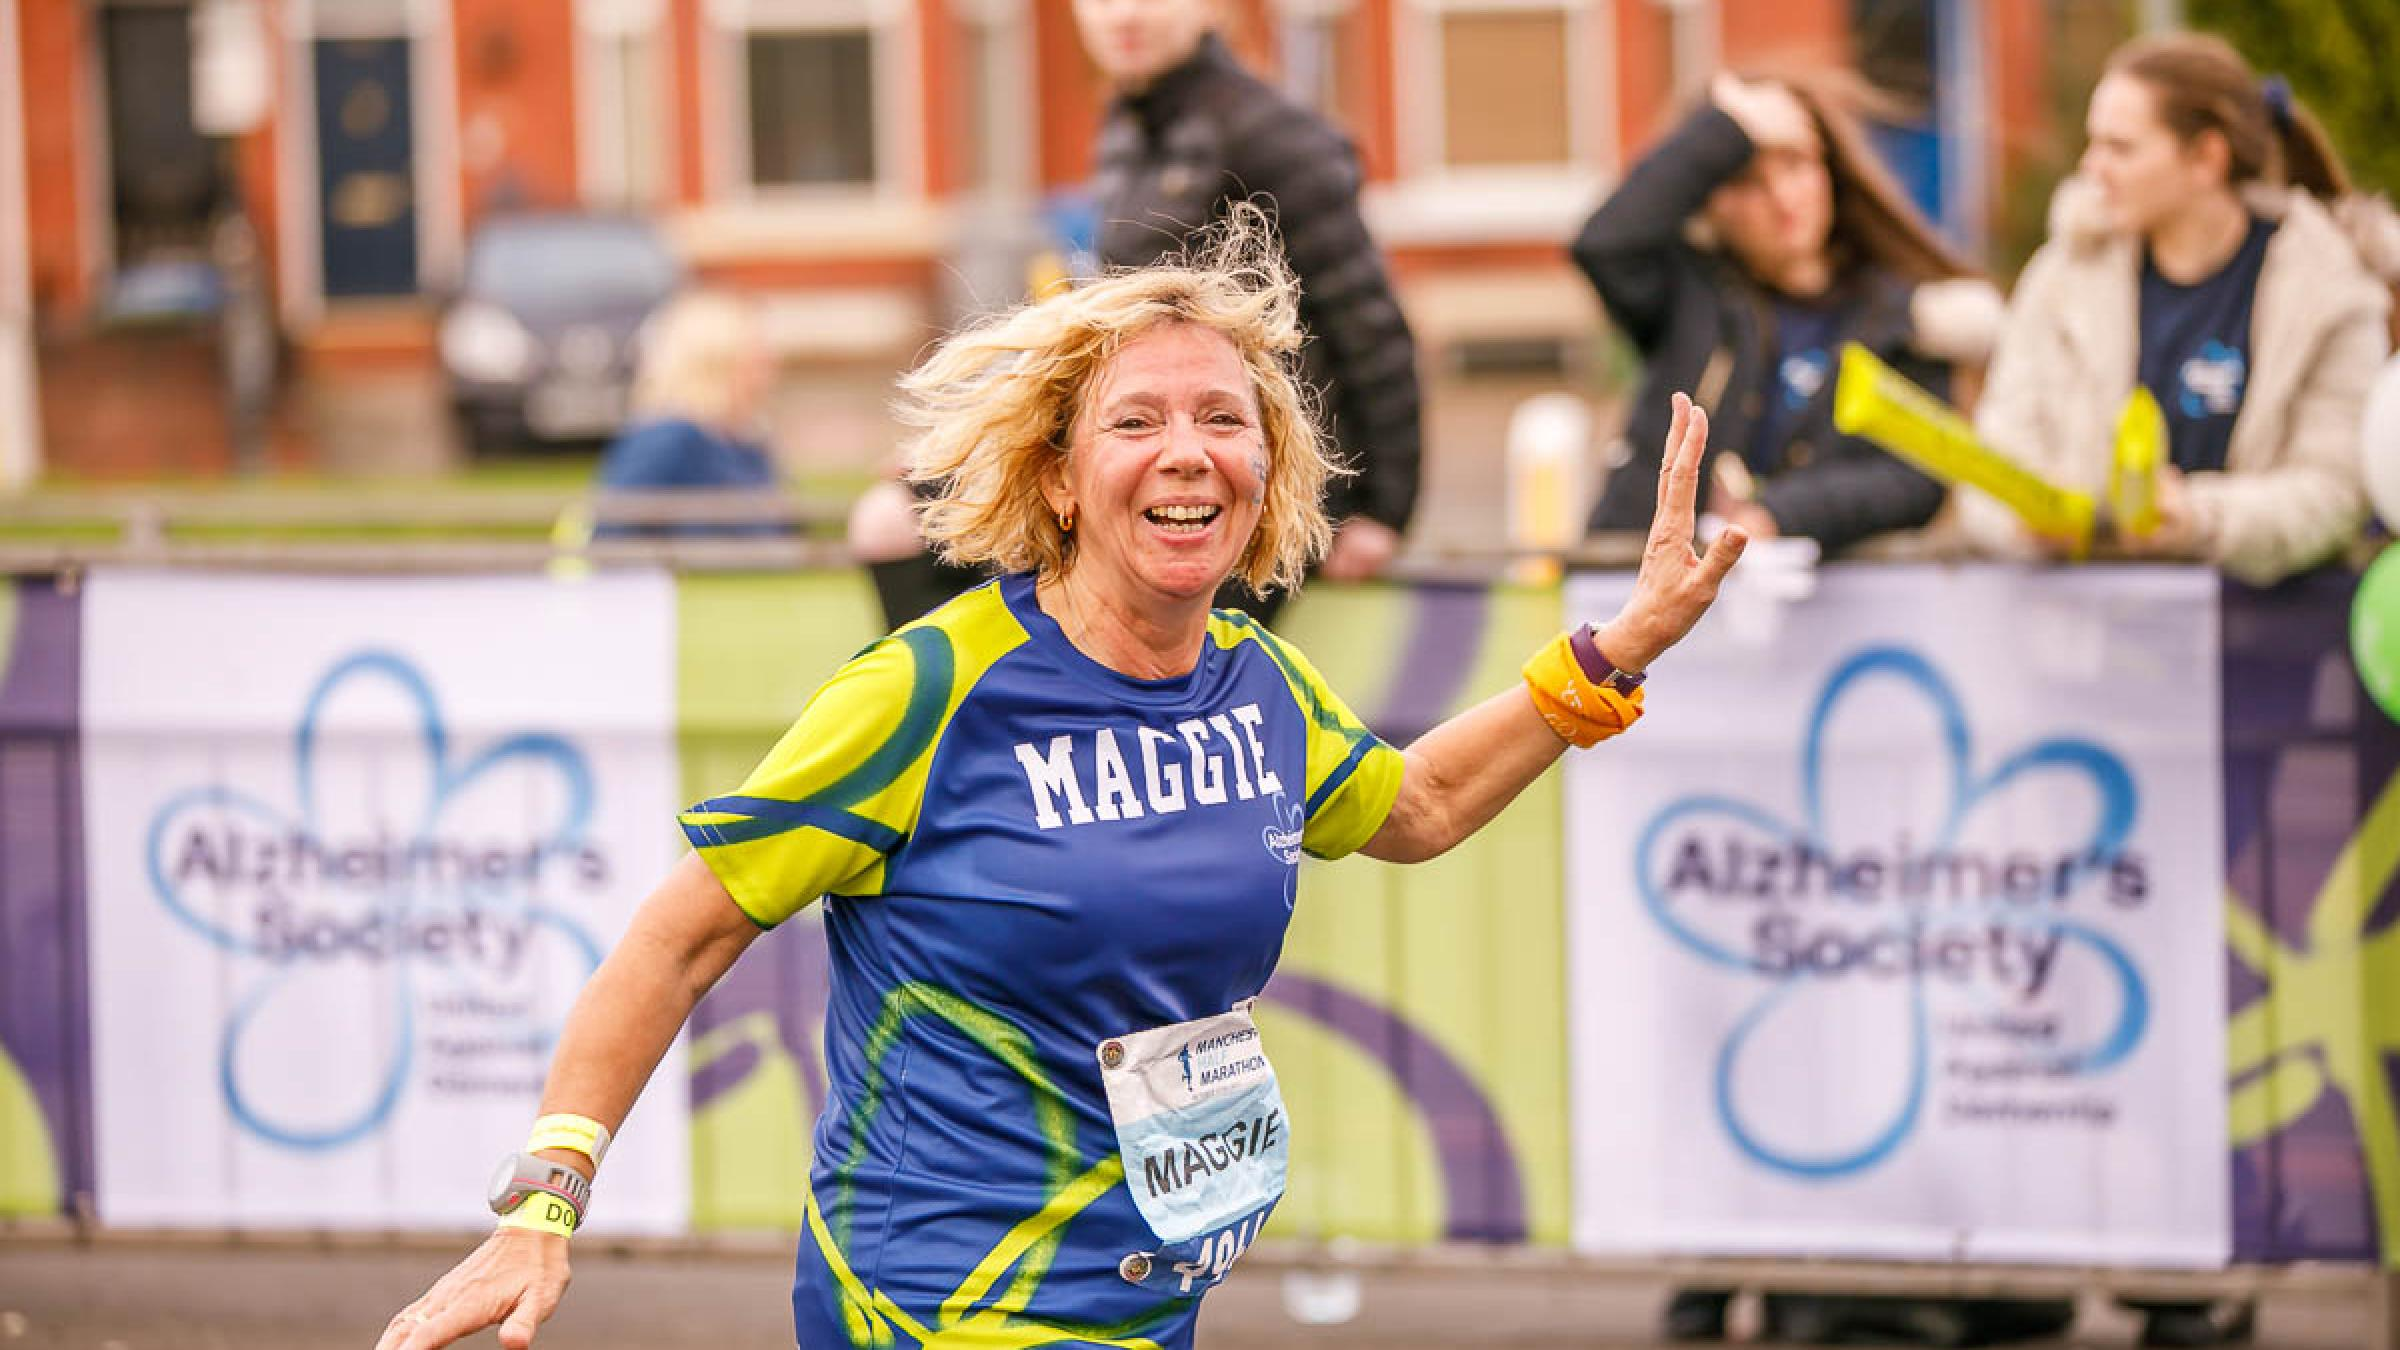 Lady running in a race